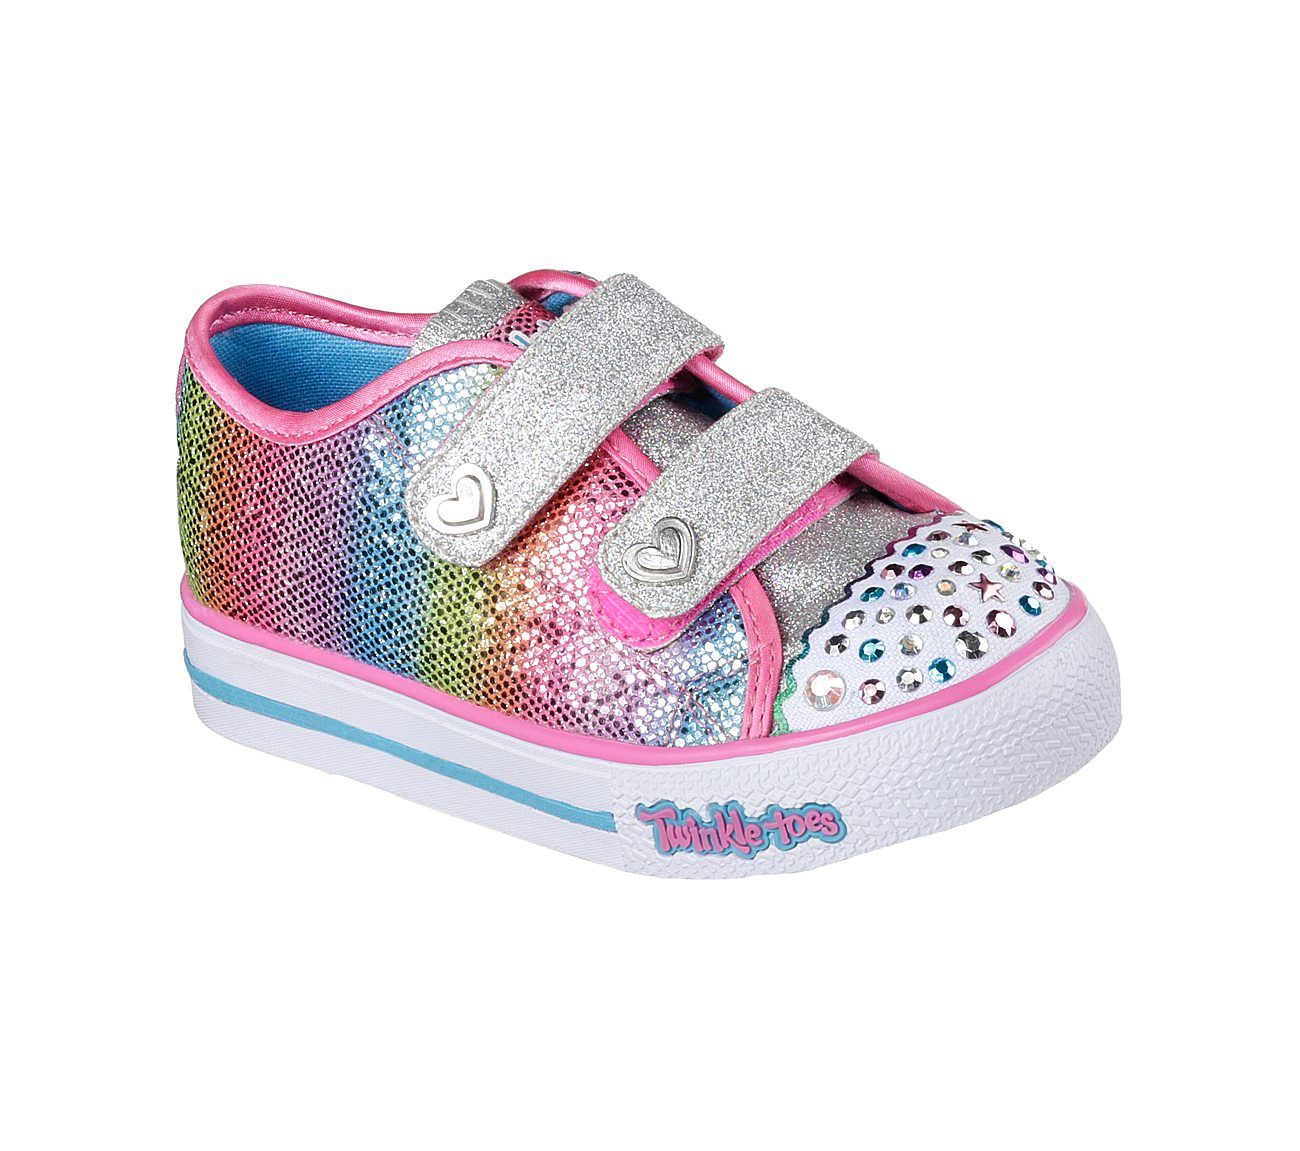 skechers shoes twinkle toes